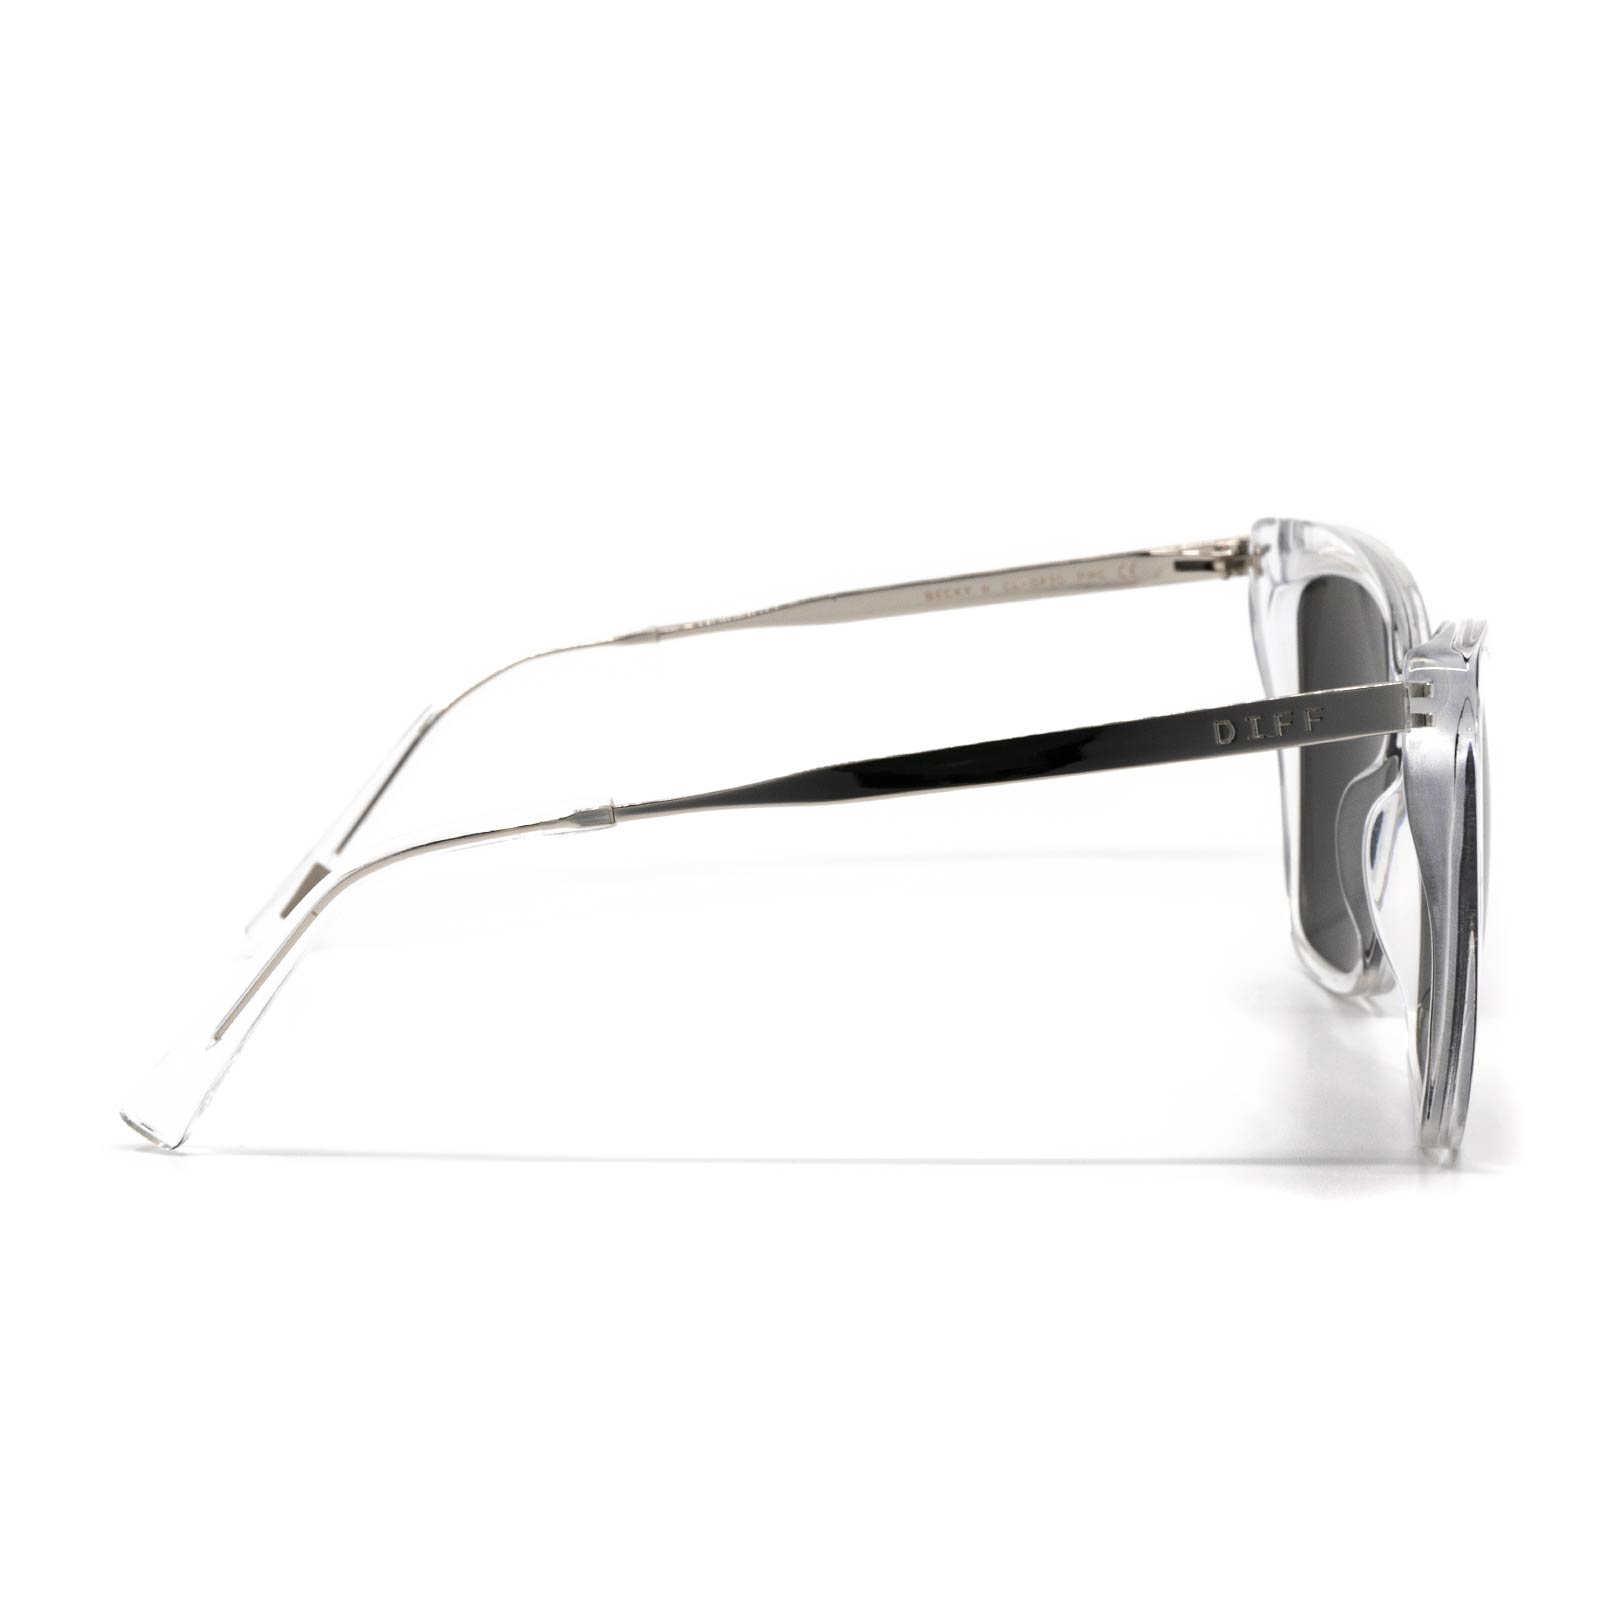 Becky II sunglasses with clear frame and grey flash lens- side view